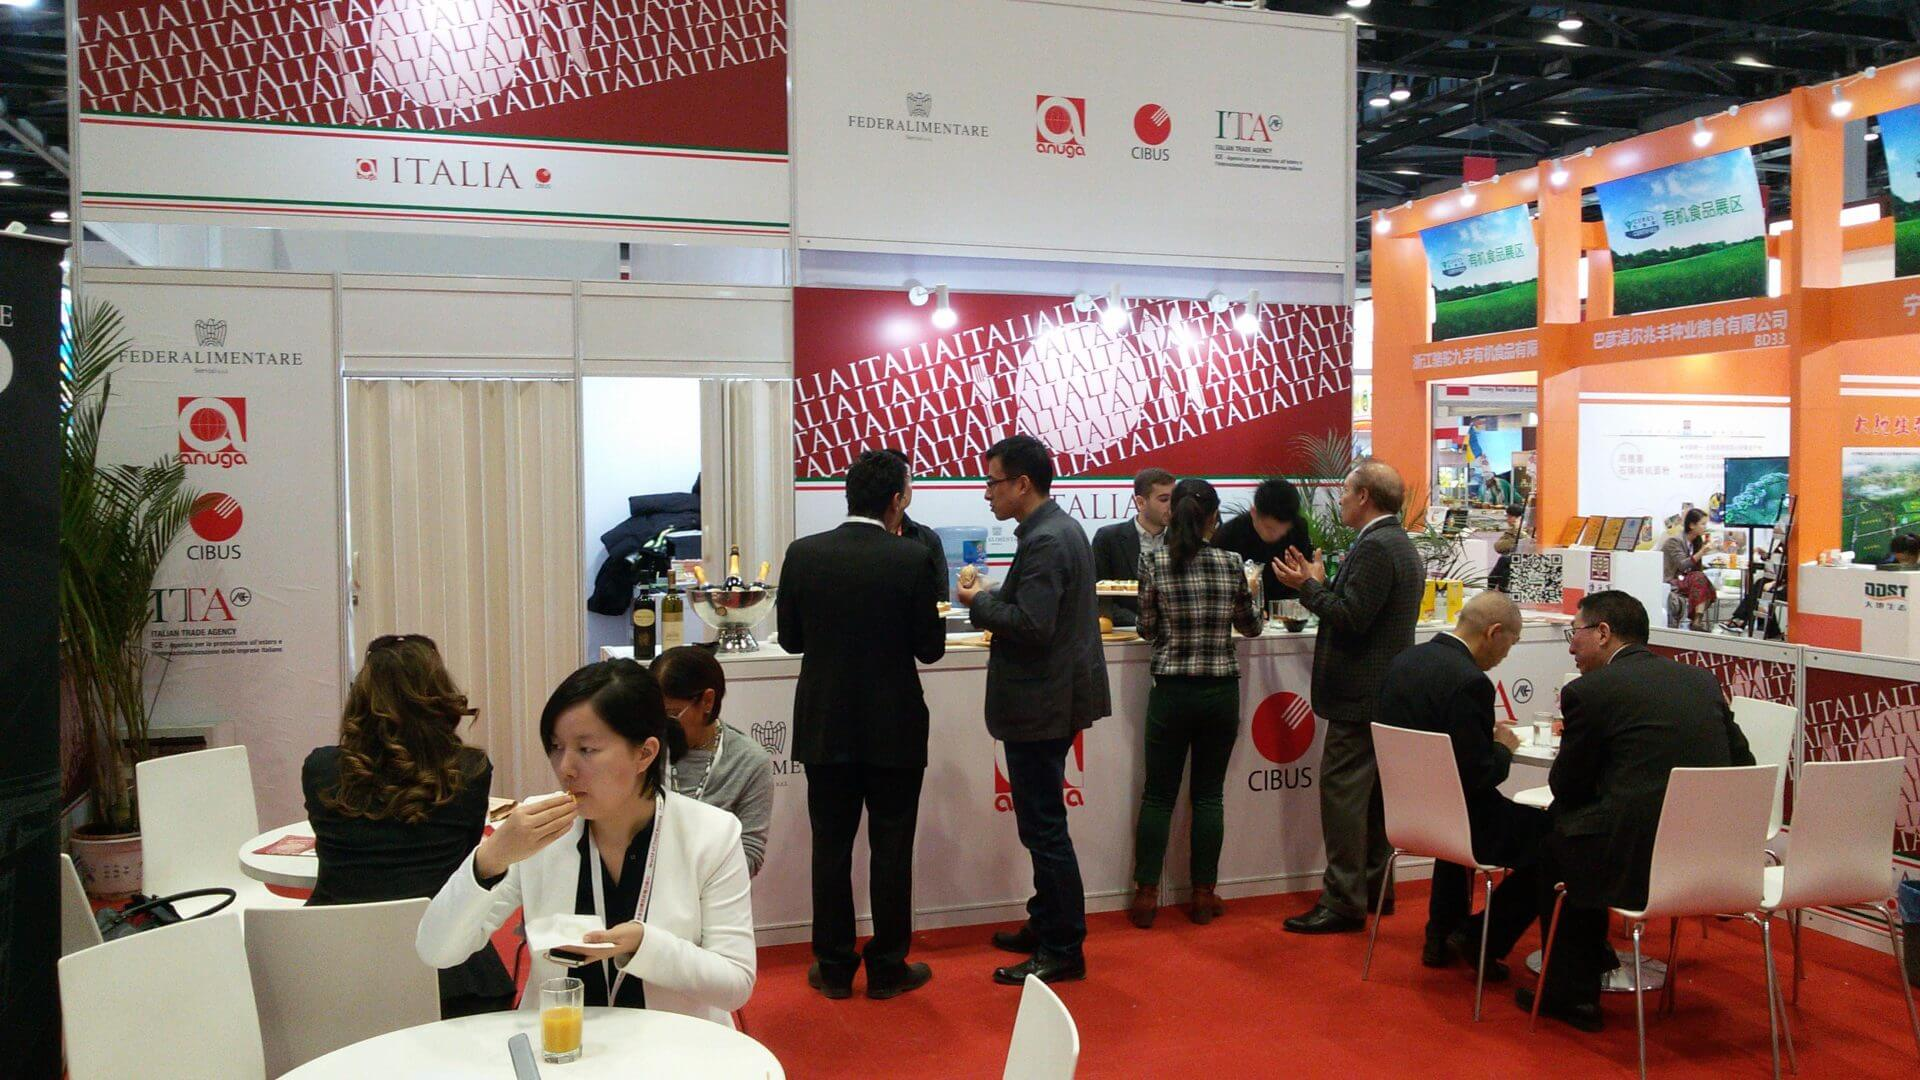 La lounge dell'Area Italia all'interno dell'esposizione